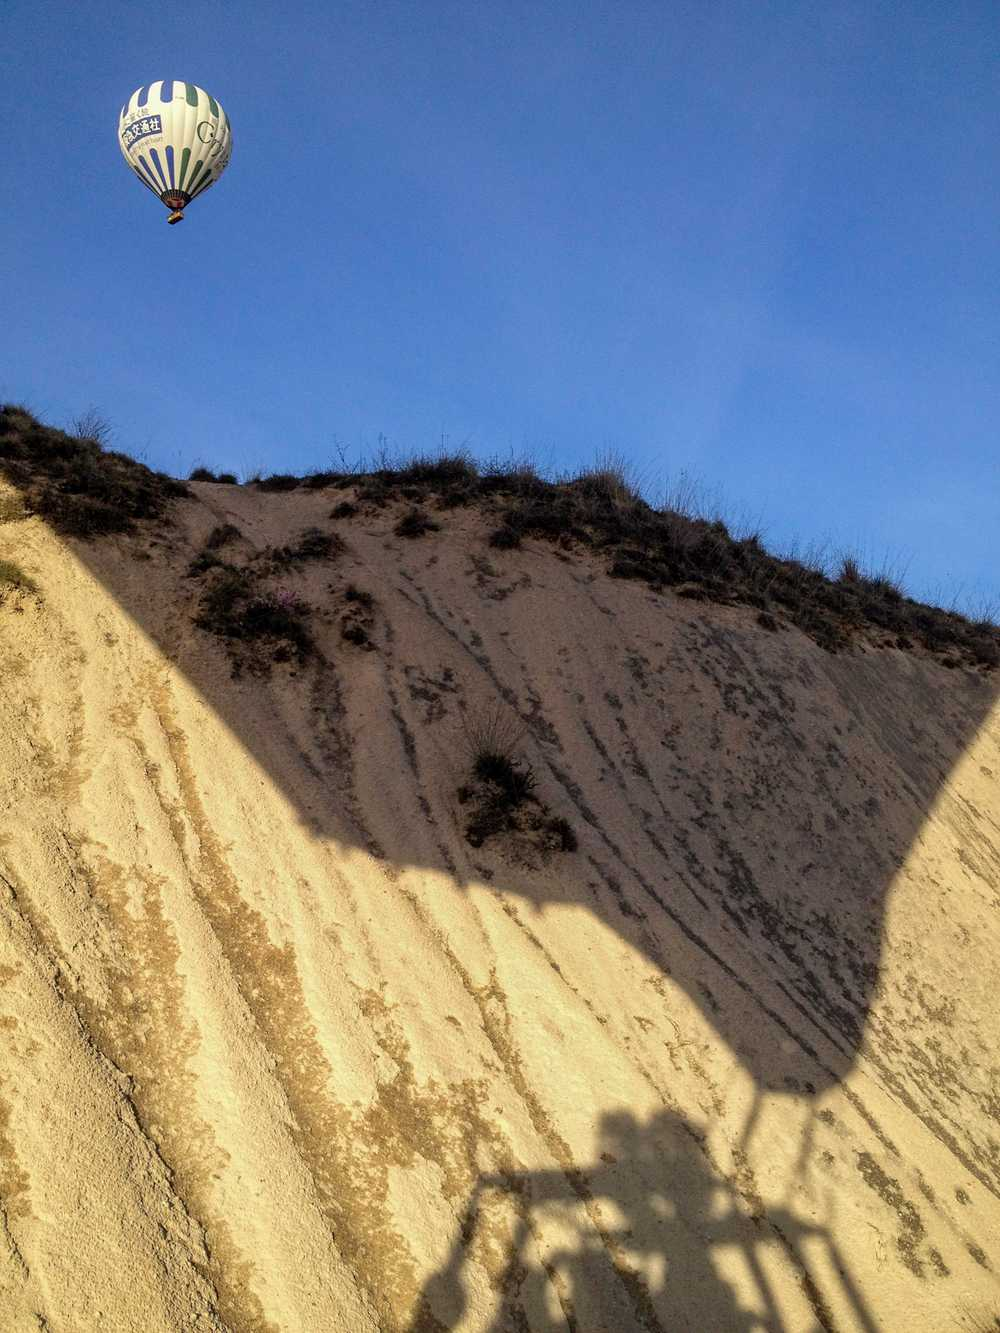 Nap-of-the-earth flying —our own shadow on the hillside